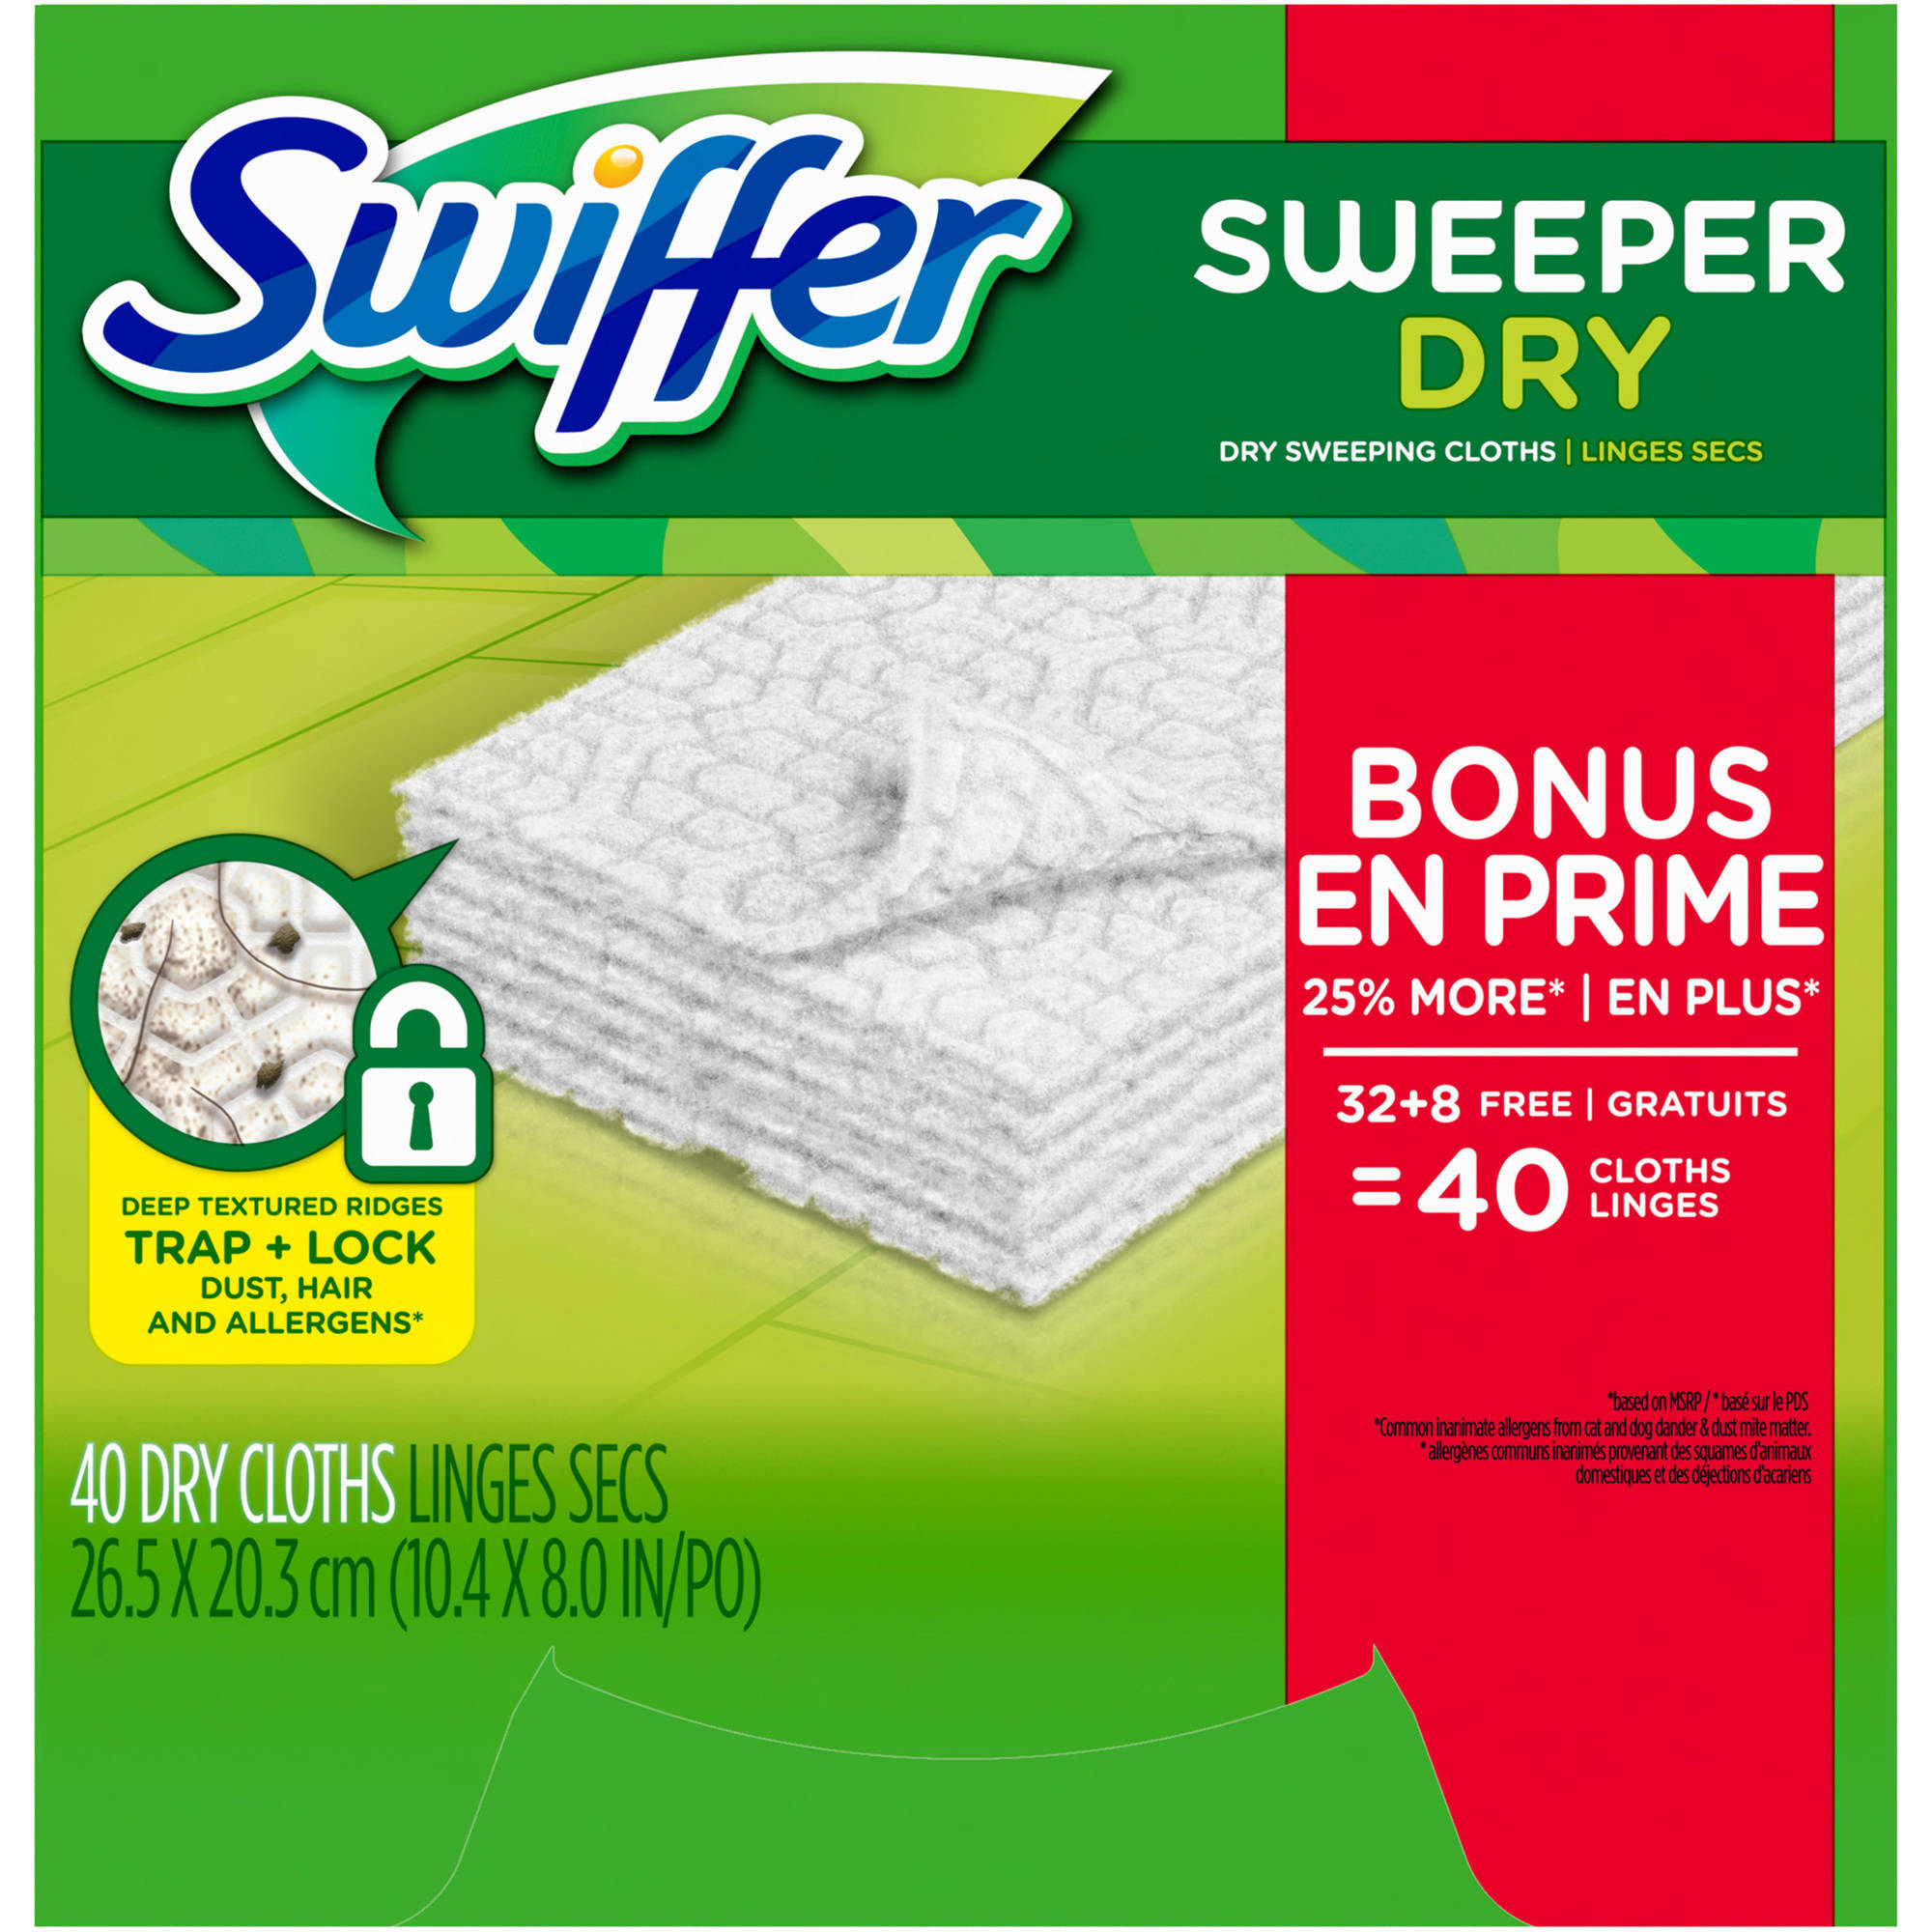 Swiffer Sweeper Dry Sweeping Cloth Refills, 40 count